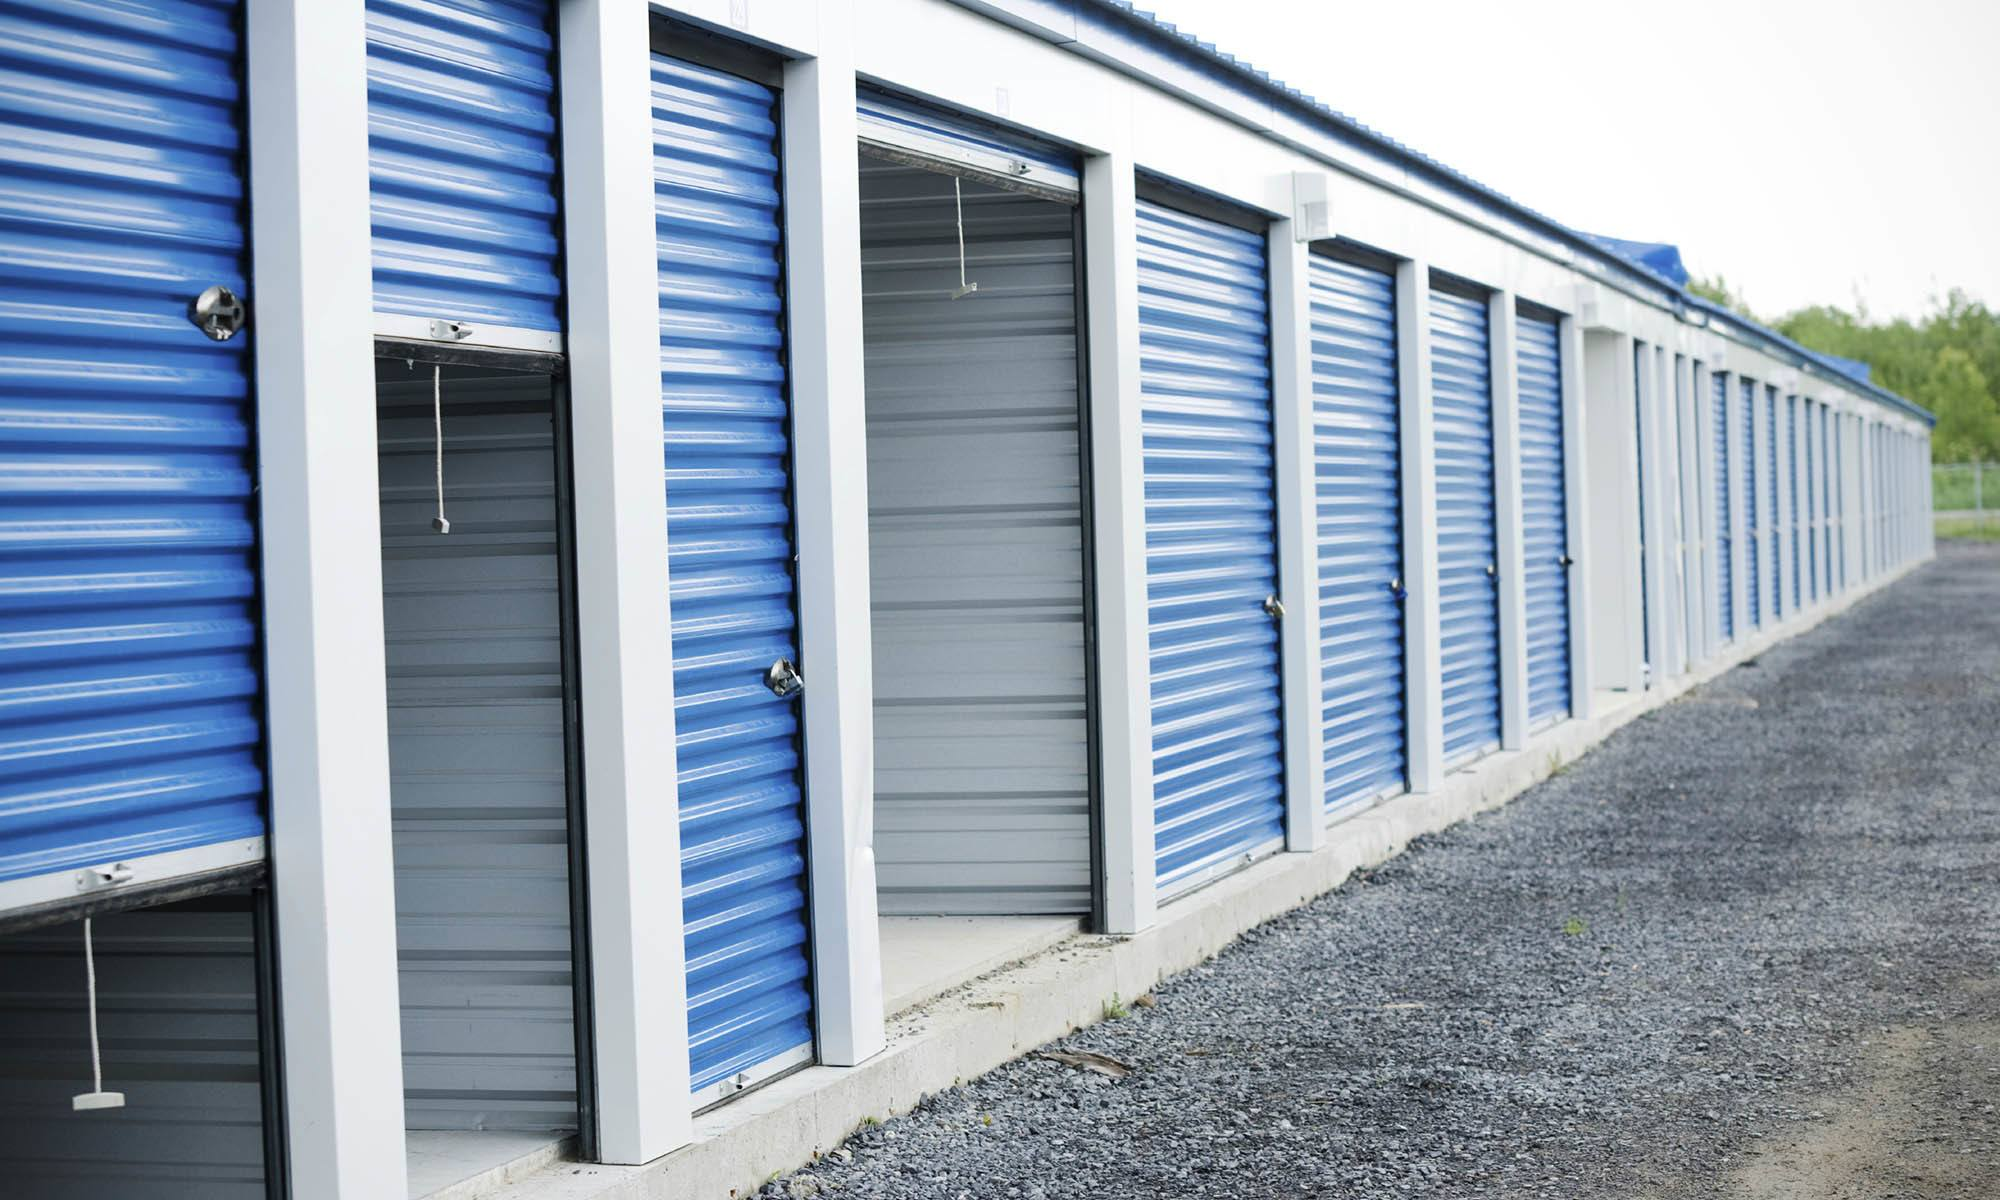 Storage units near me-Reasons to get